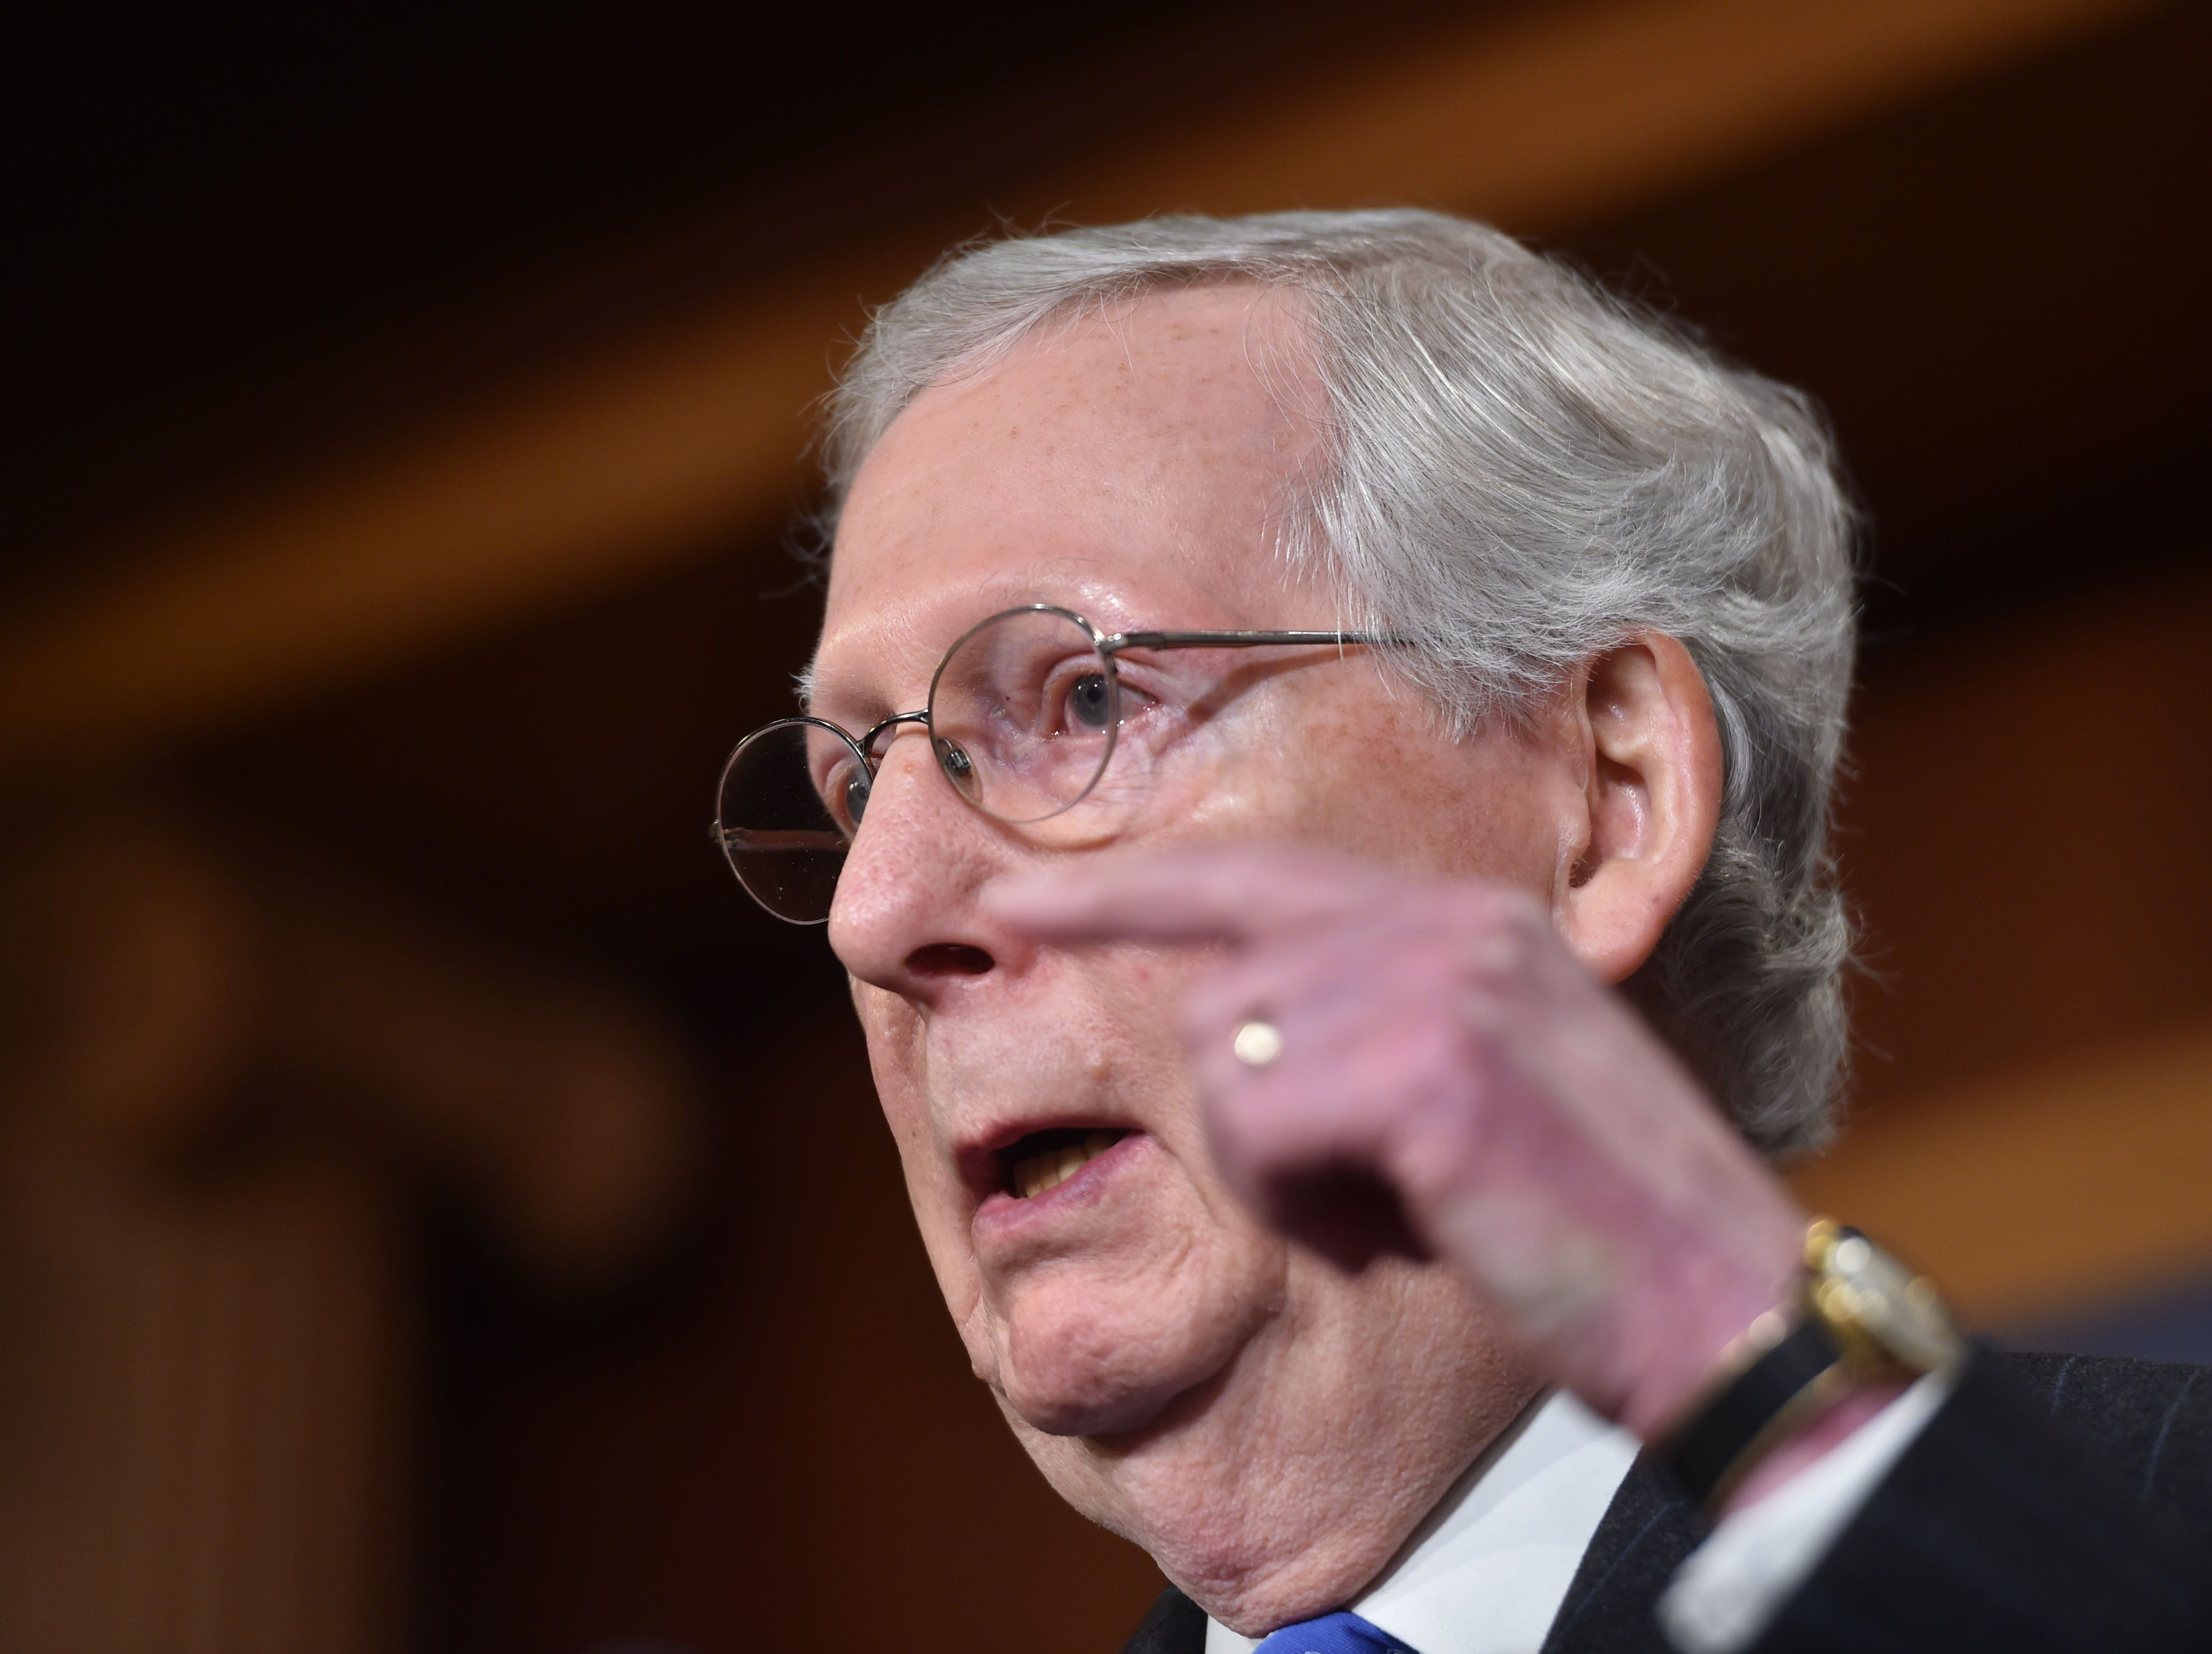 Mitch McConnell, in reversal, says Senate will vote on criminal justice bill